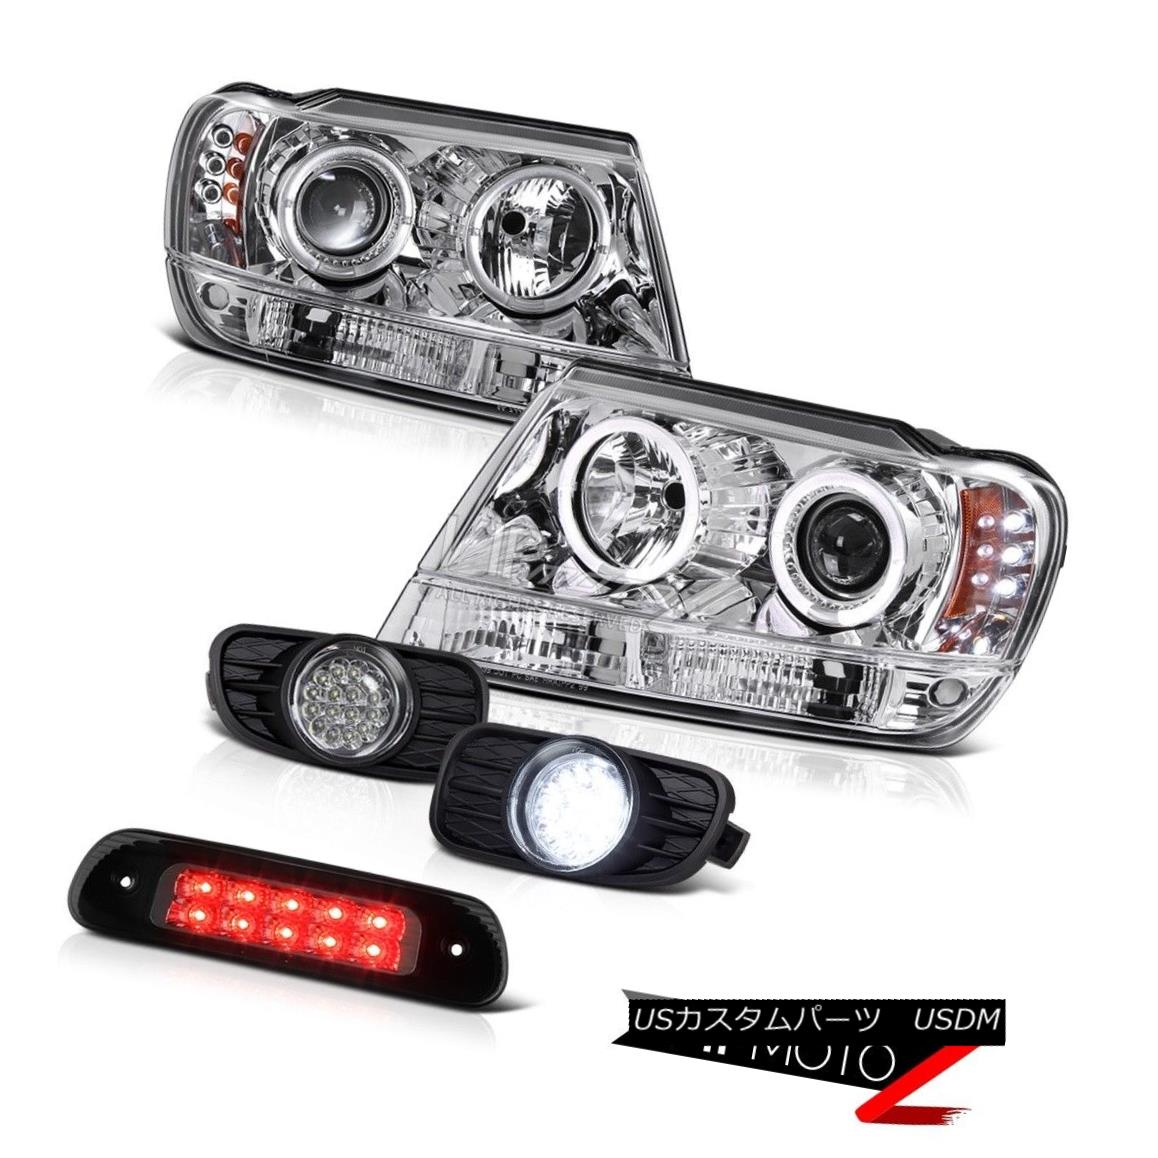 テールライト 1999-2003 Jeep Grand Cherokee WG 4WD Roof Cab Lamp Foglights Headlamps LED Sm 1999-2003 Jeep Grand Cherokee WG 4WDルーフキャブ・ランプフォグライトヘッドランプLED Sm